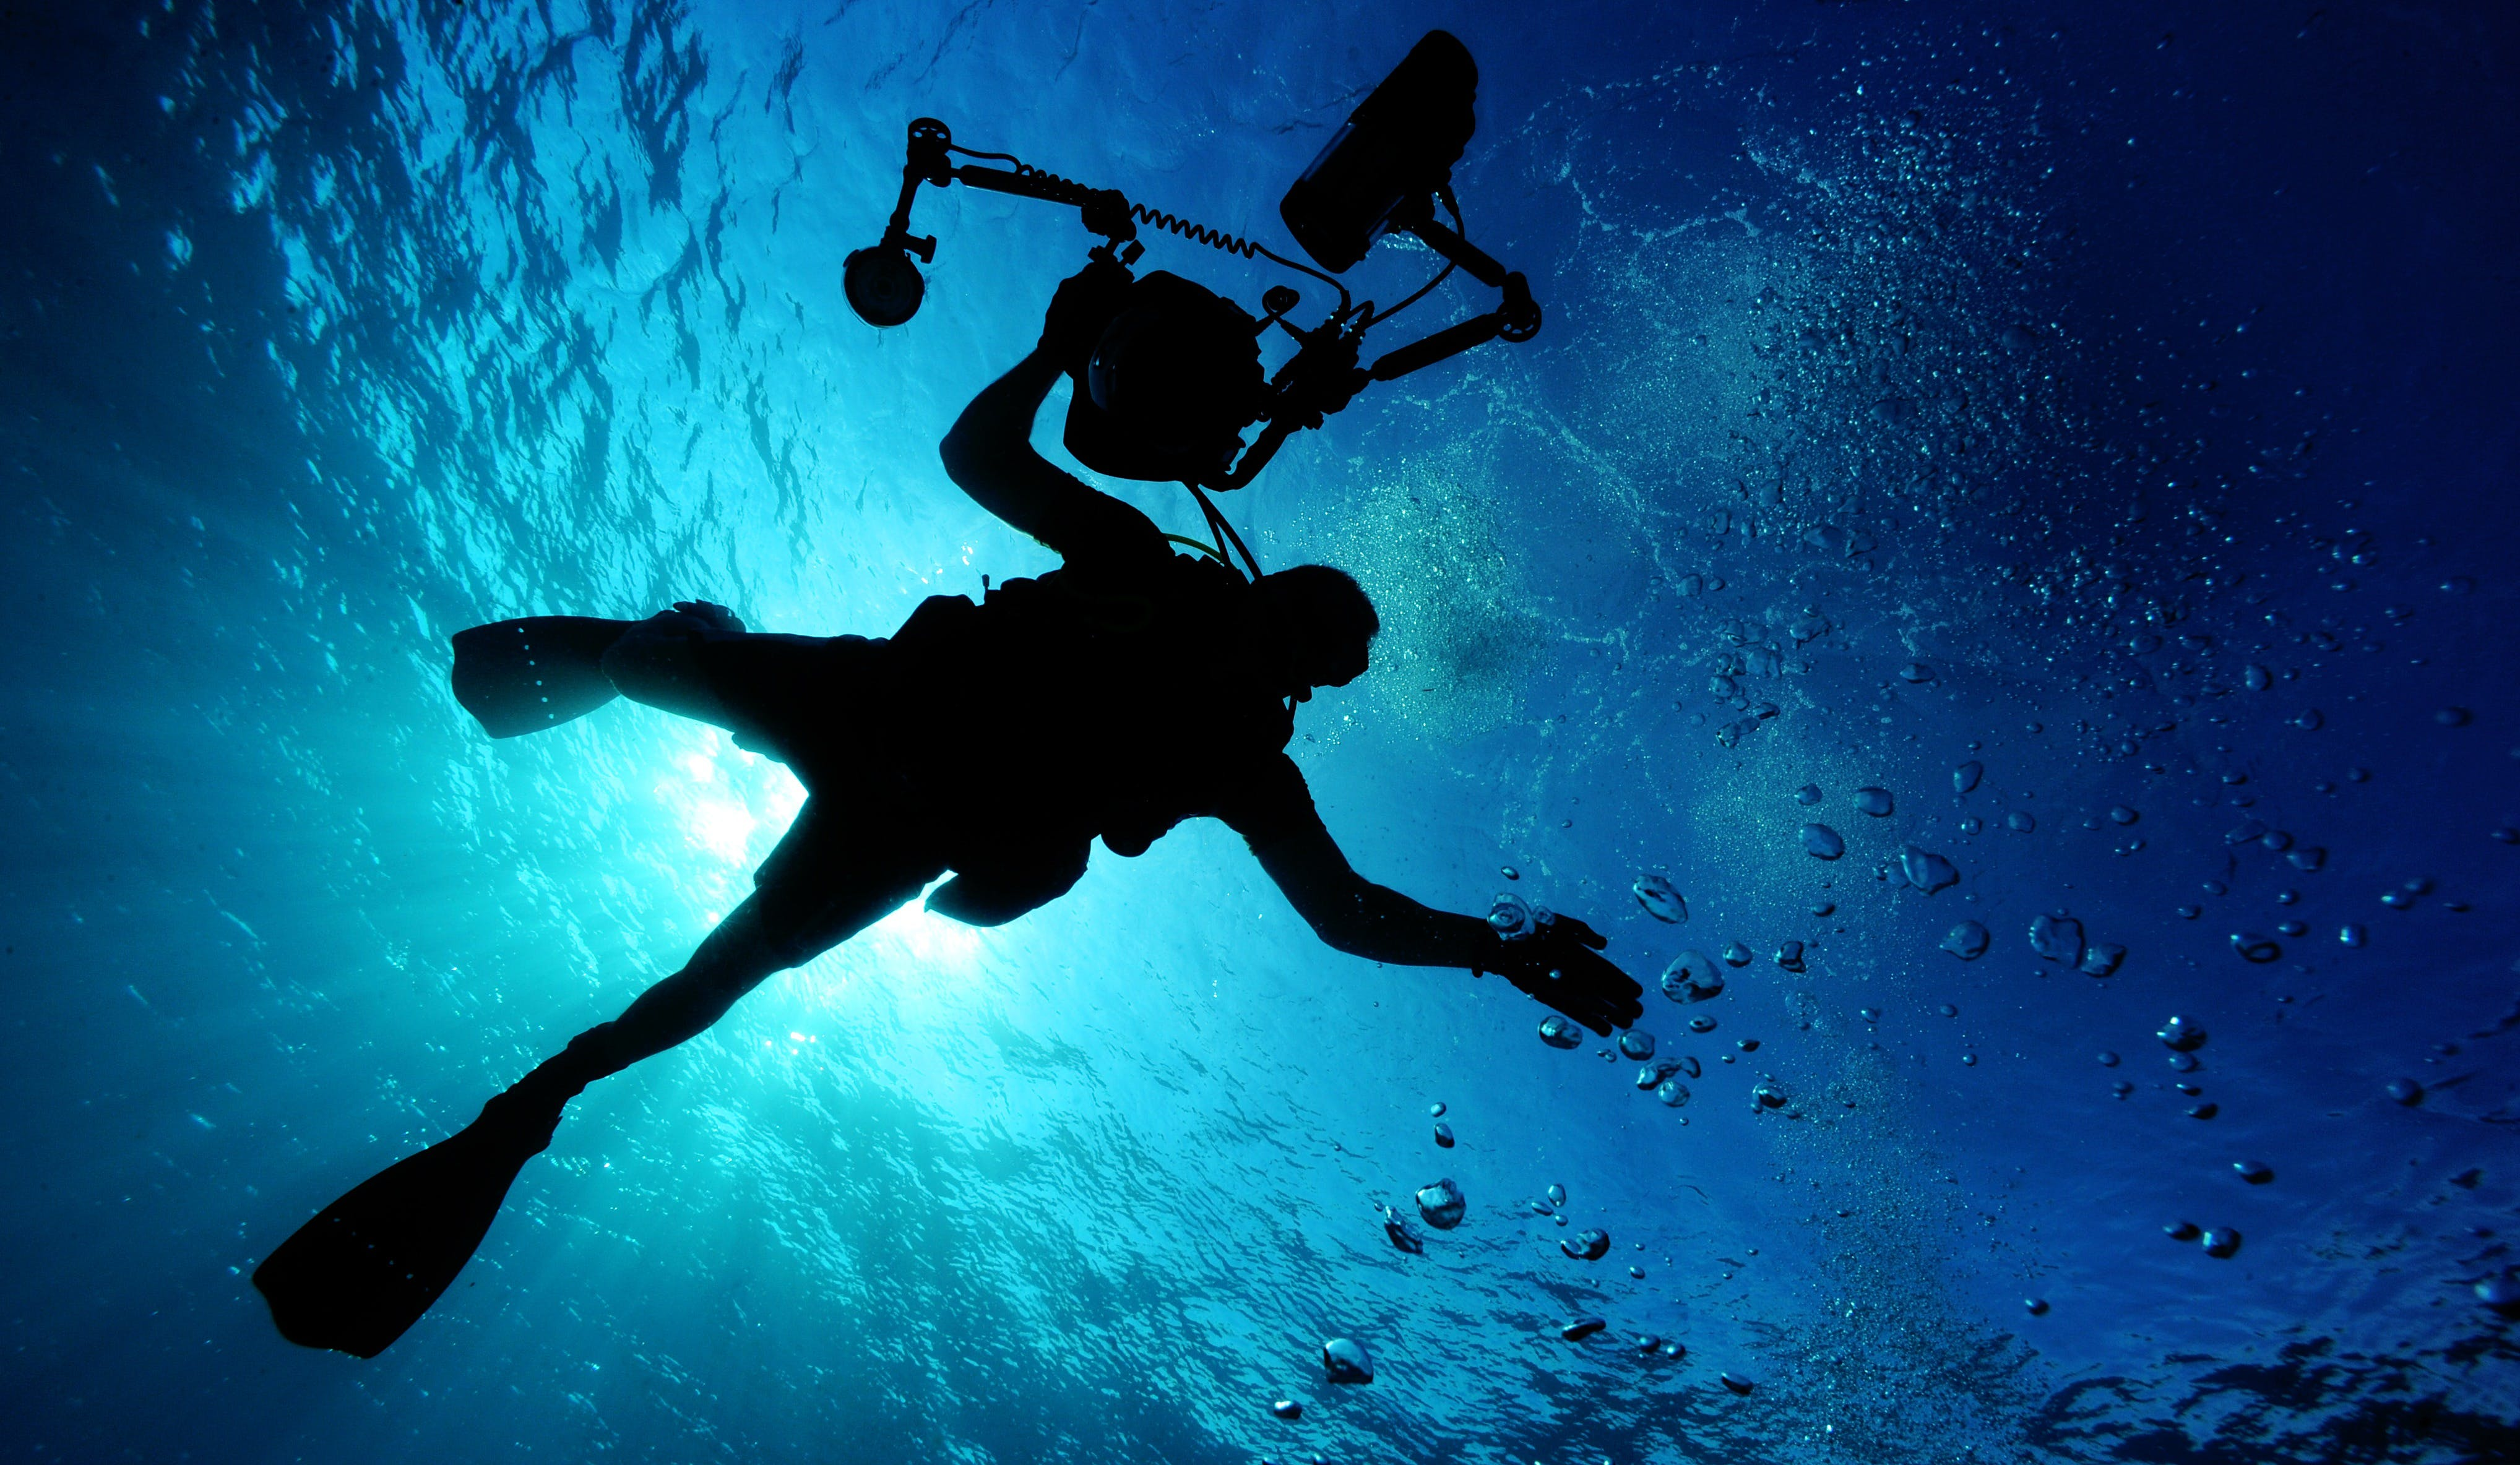 Silhouette of Person Holding Camera in Body of Water